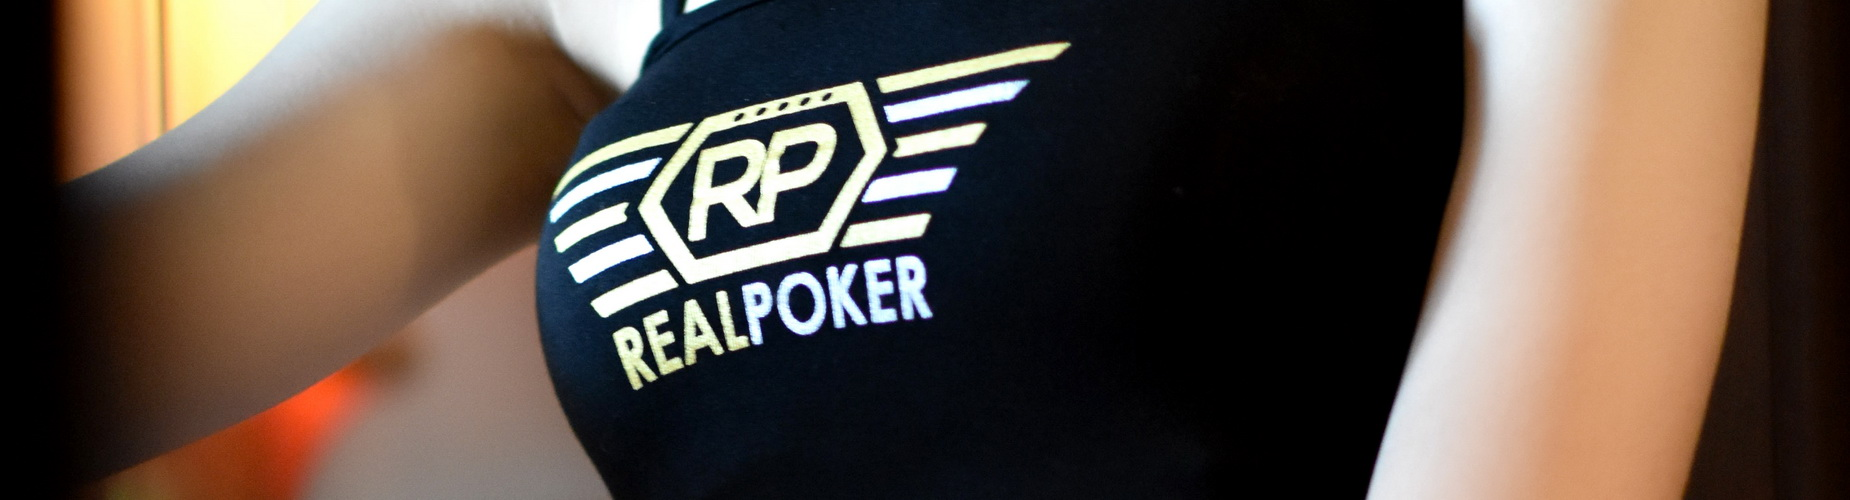 Poker face players in online poker